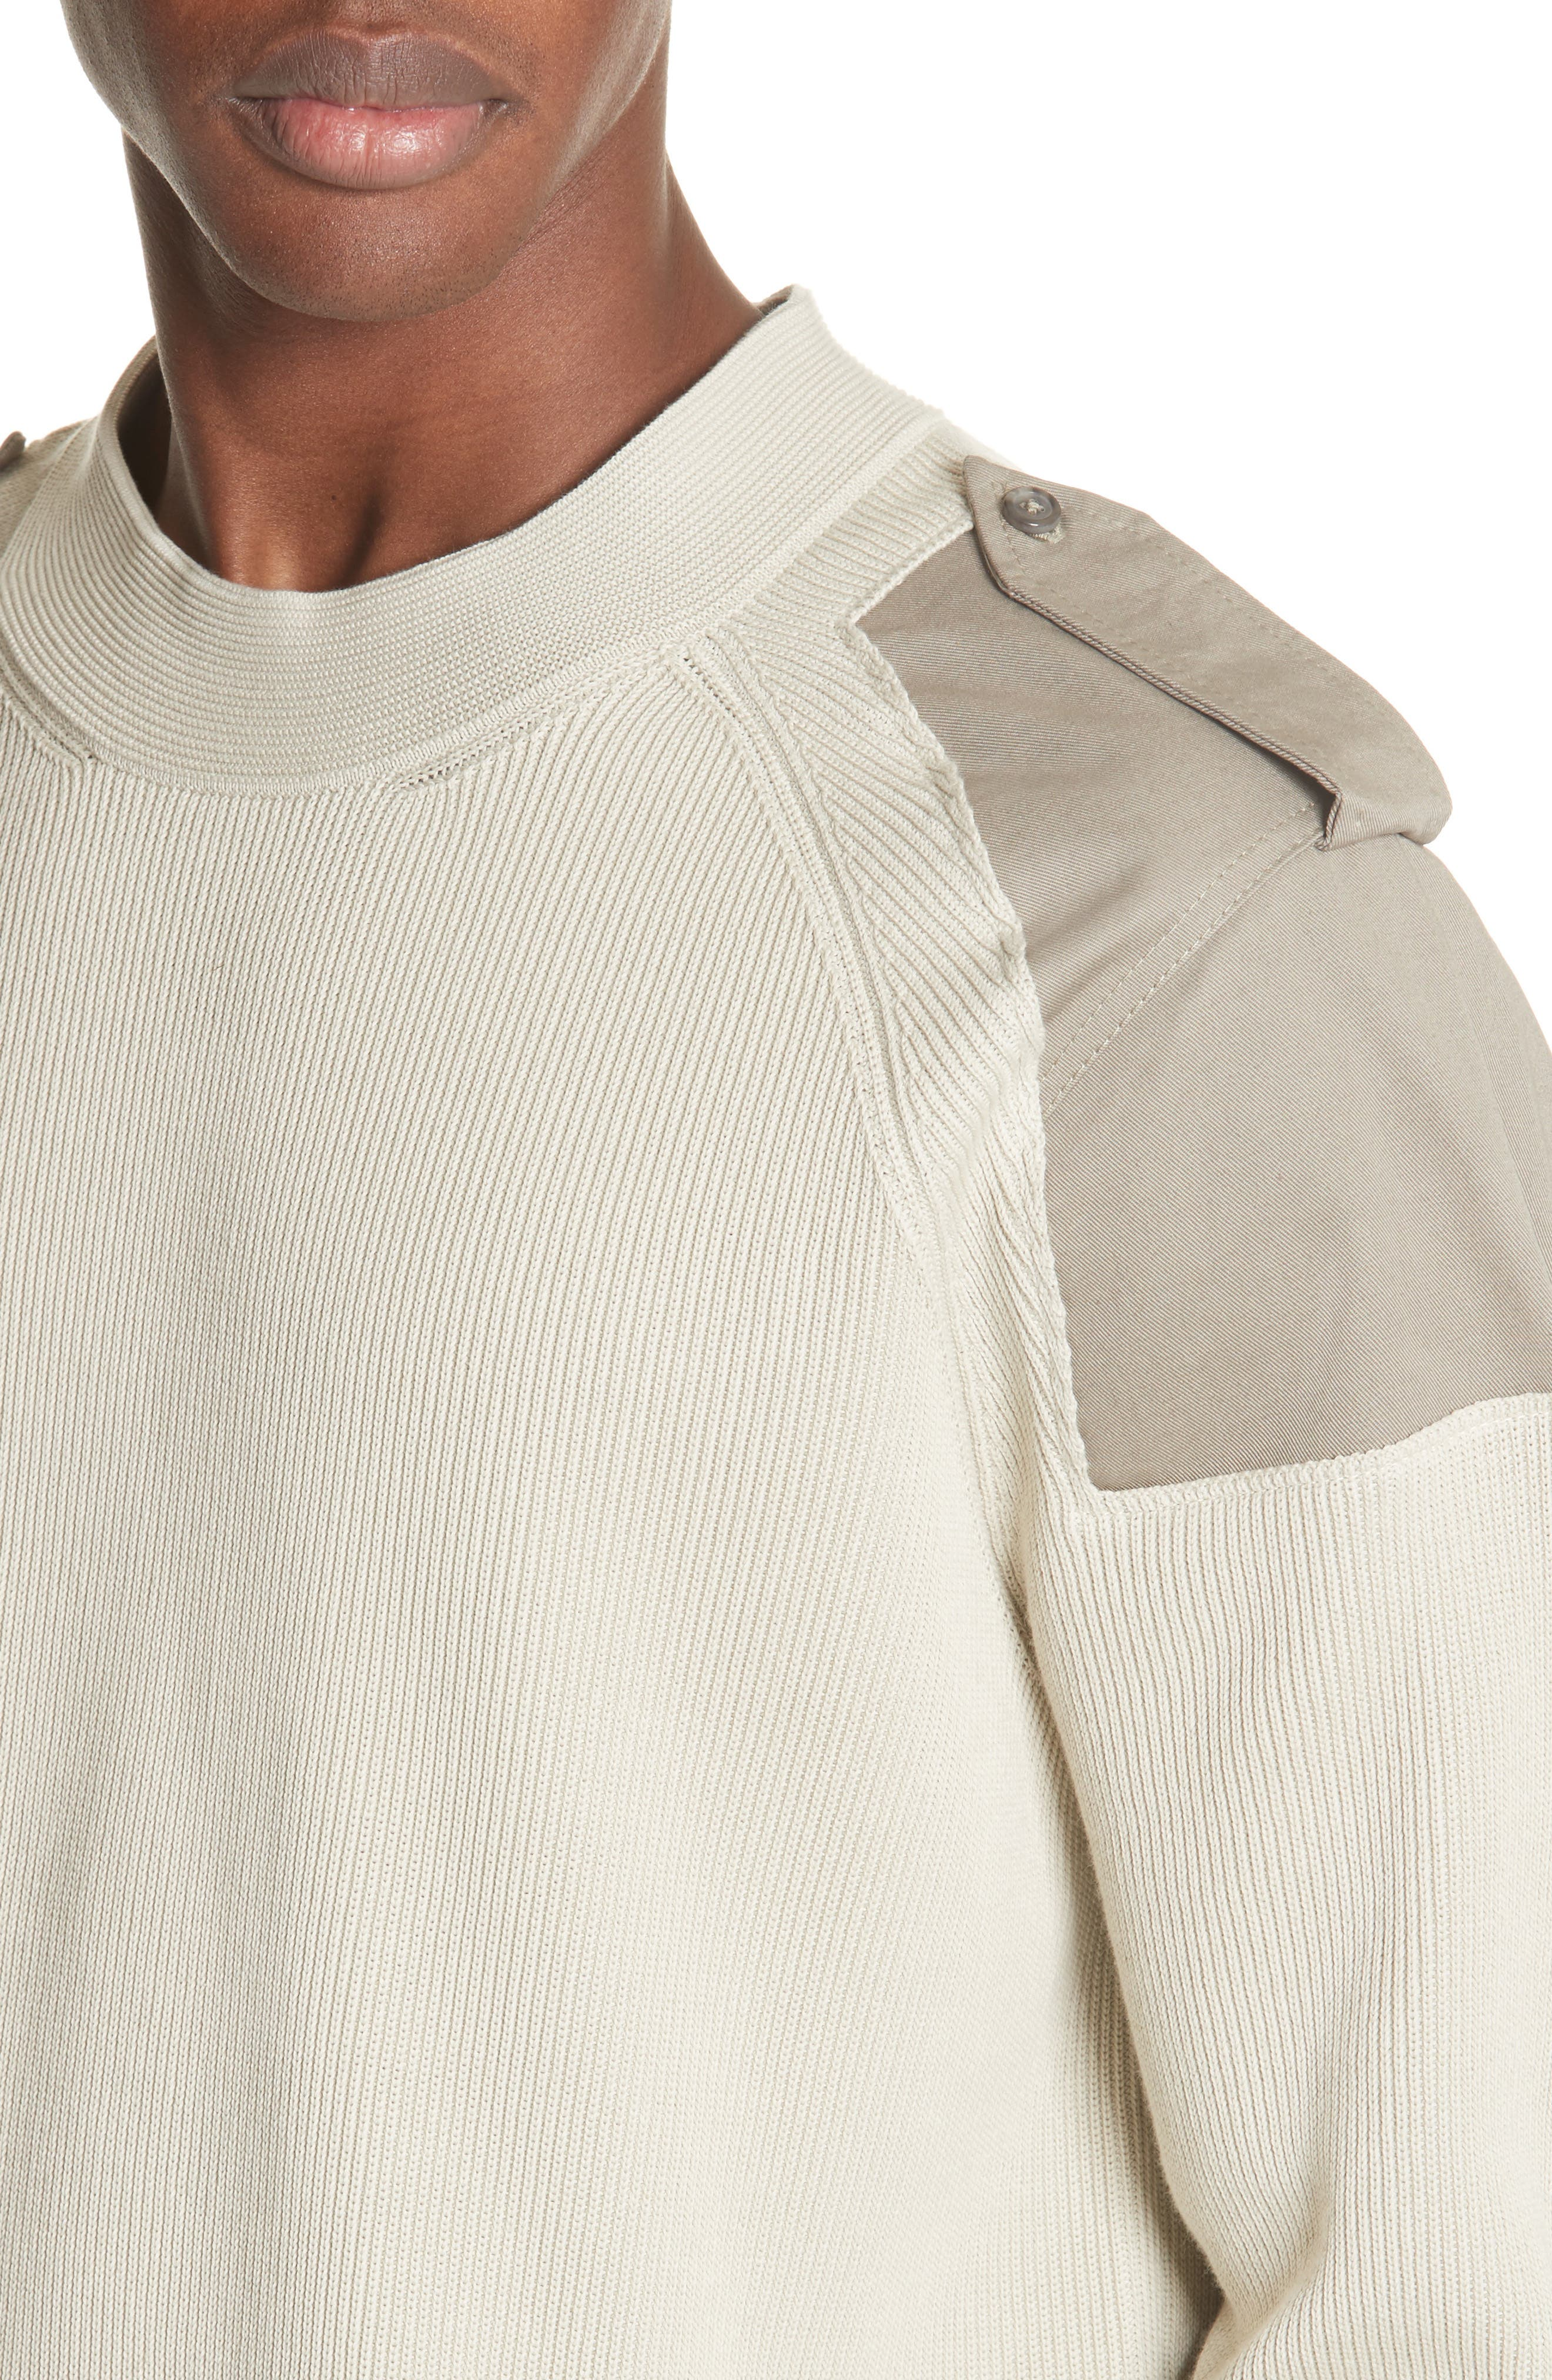 Two-Tone Military Sweater,                             Alternate thumbnail 4, color,                             242